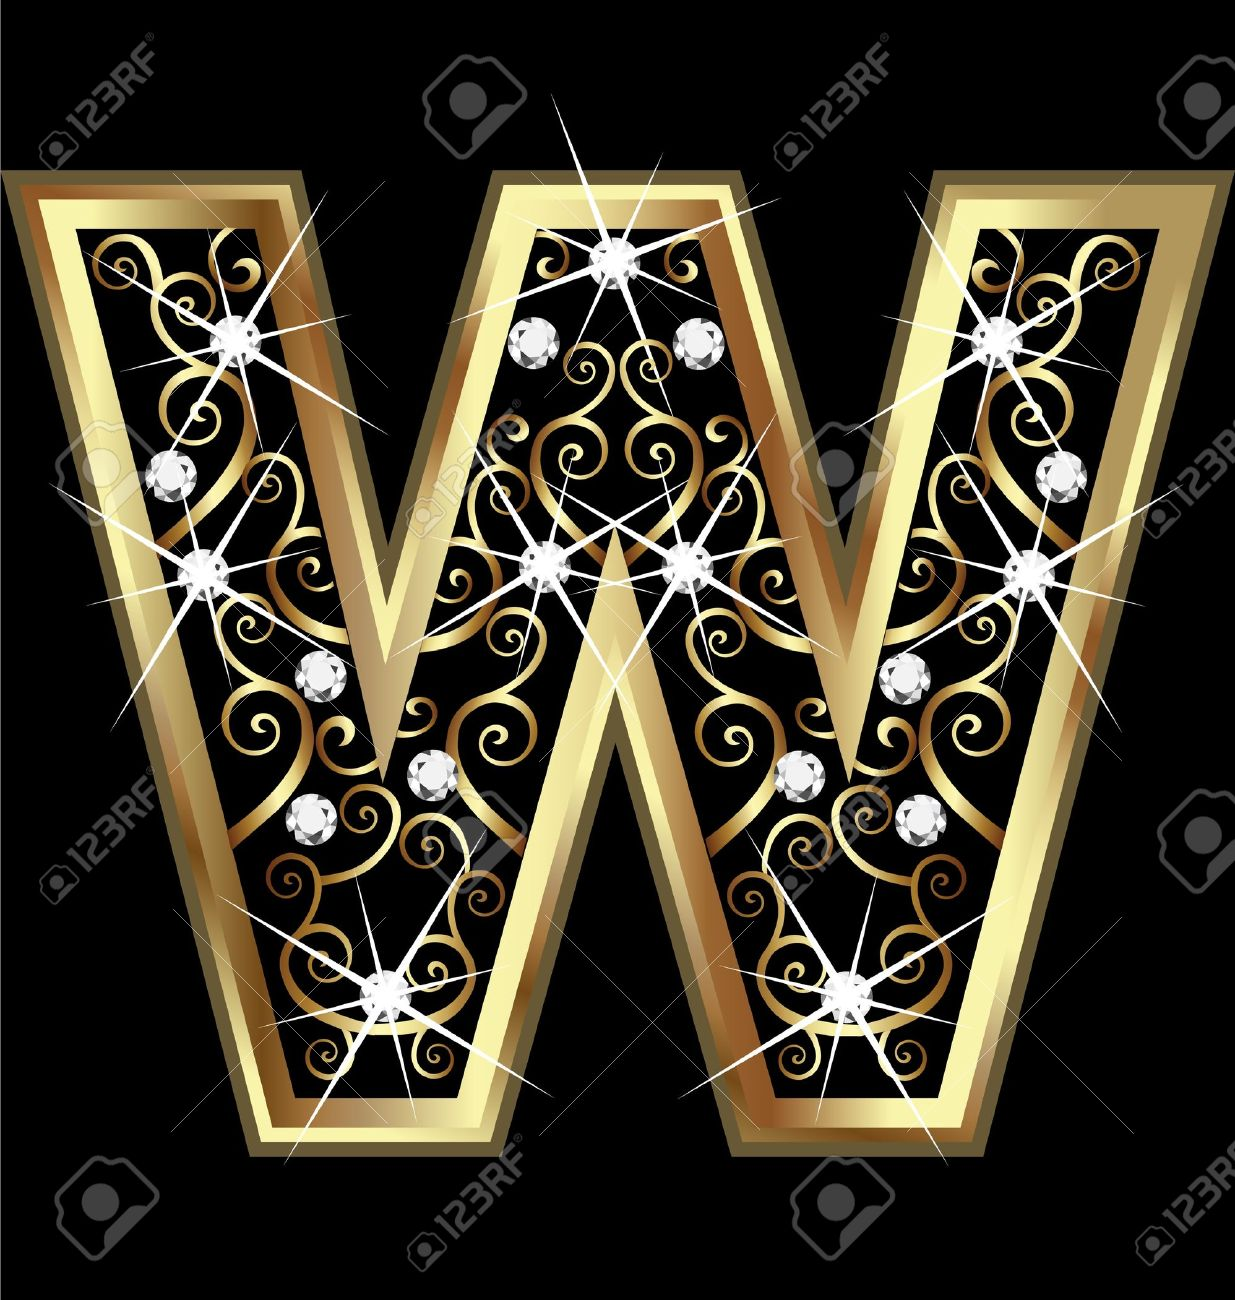 W gold letter with swirly ornaments Stock Vector - 16220132